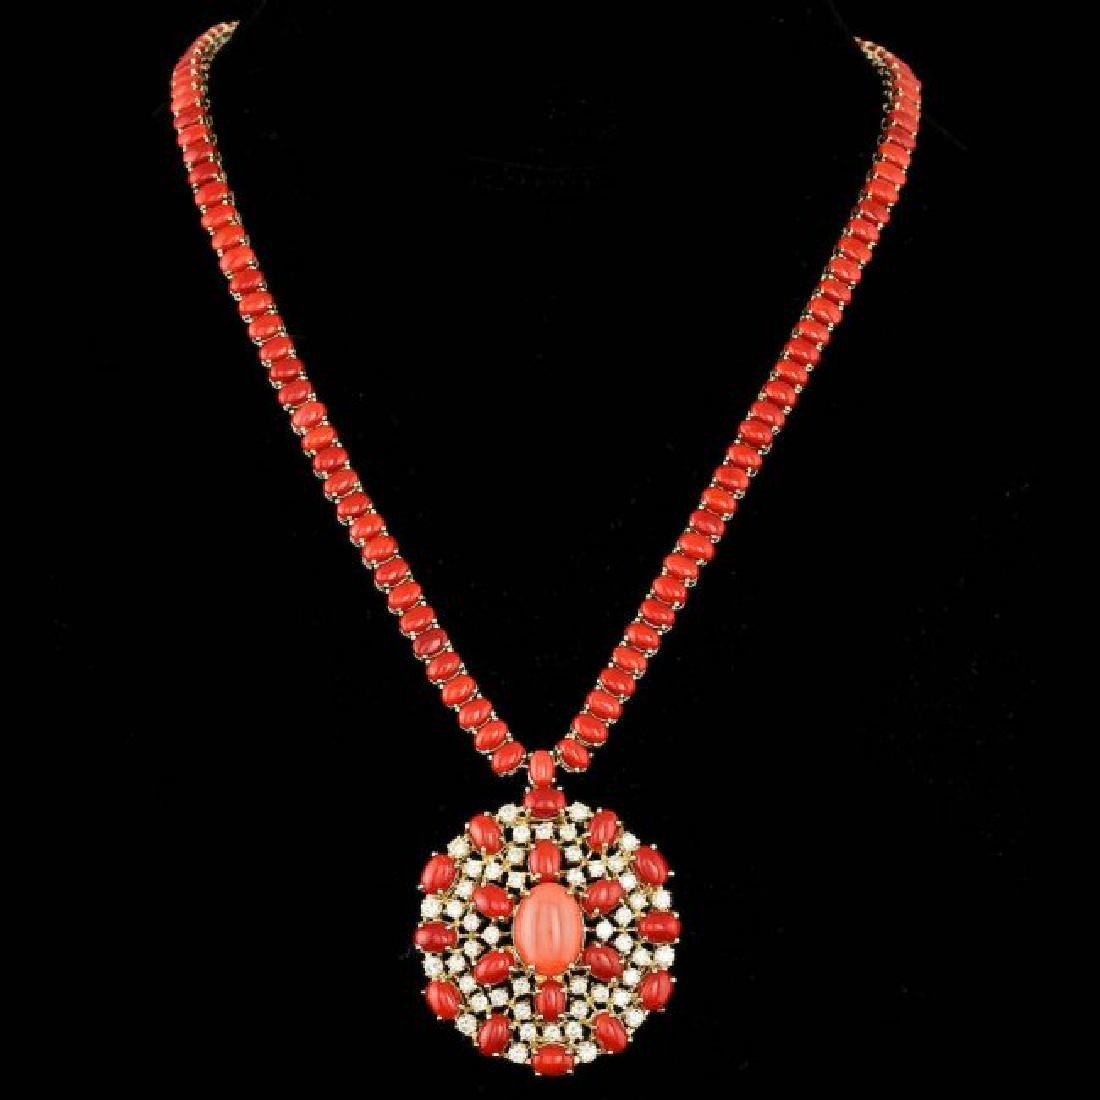 14k Gold 66ct Coral 4.40ct Diamond Necklace